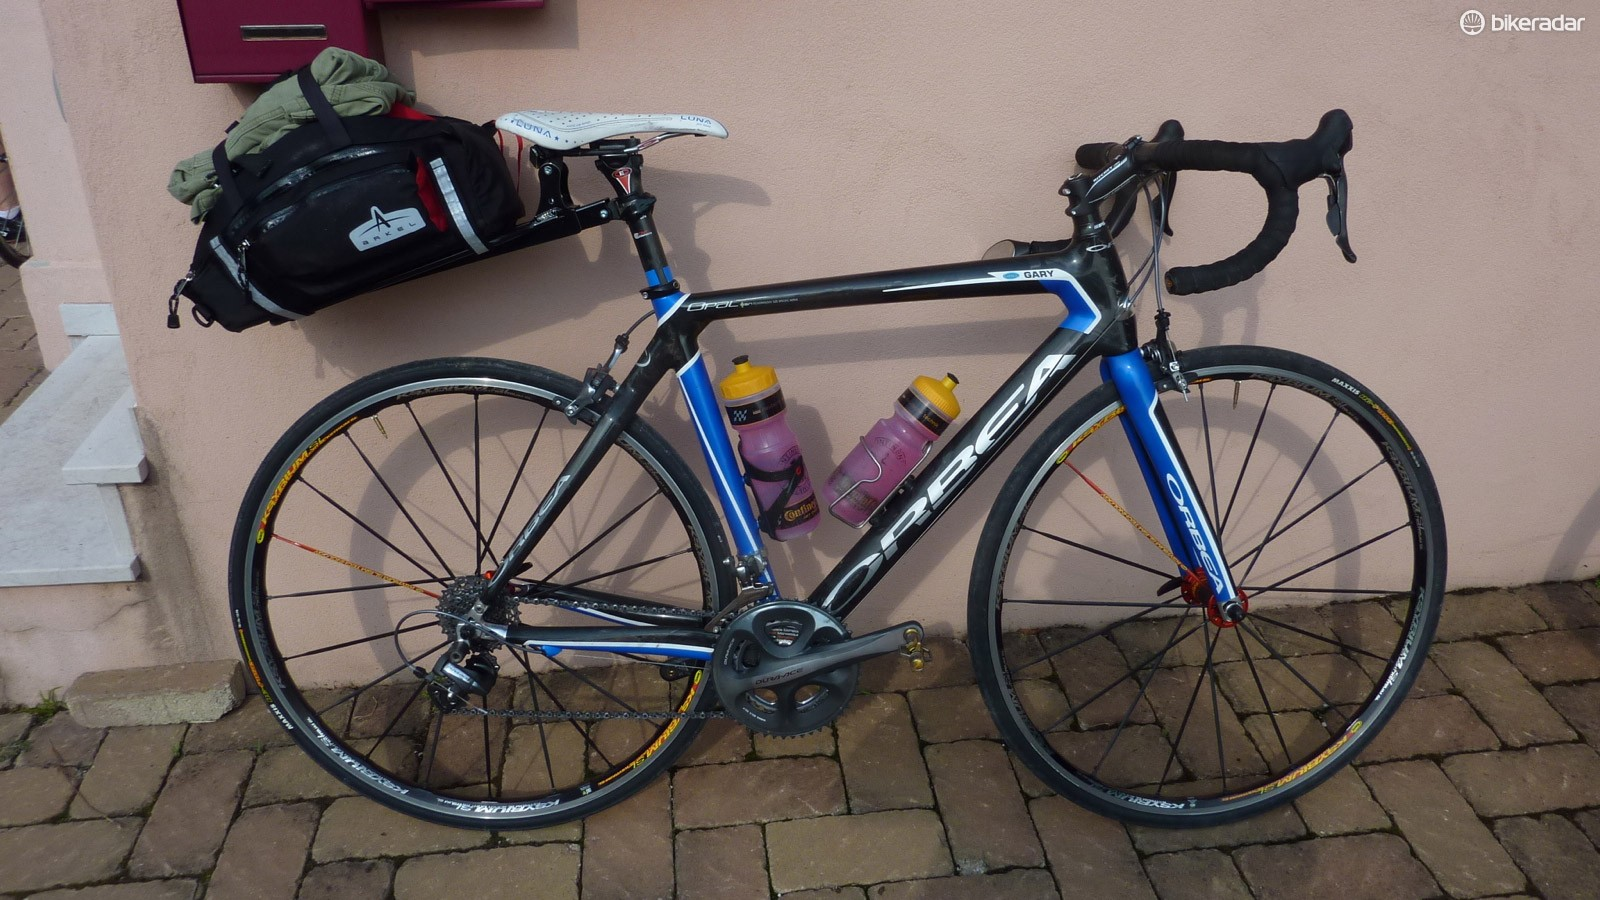 Clif Bar founder Gary Erickson's rig for living on and off of his bike in Italy